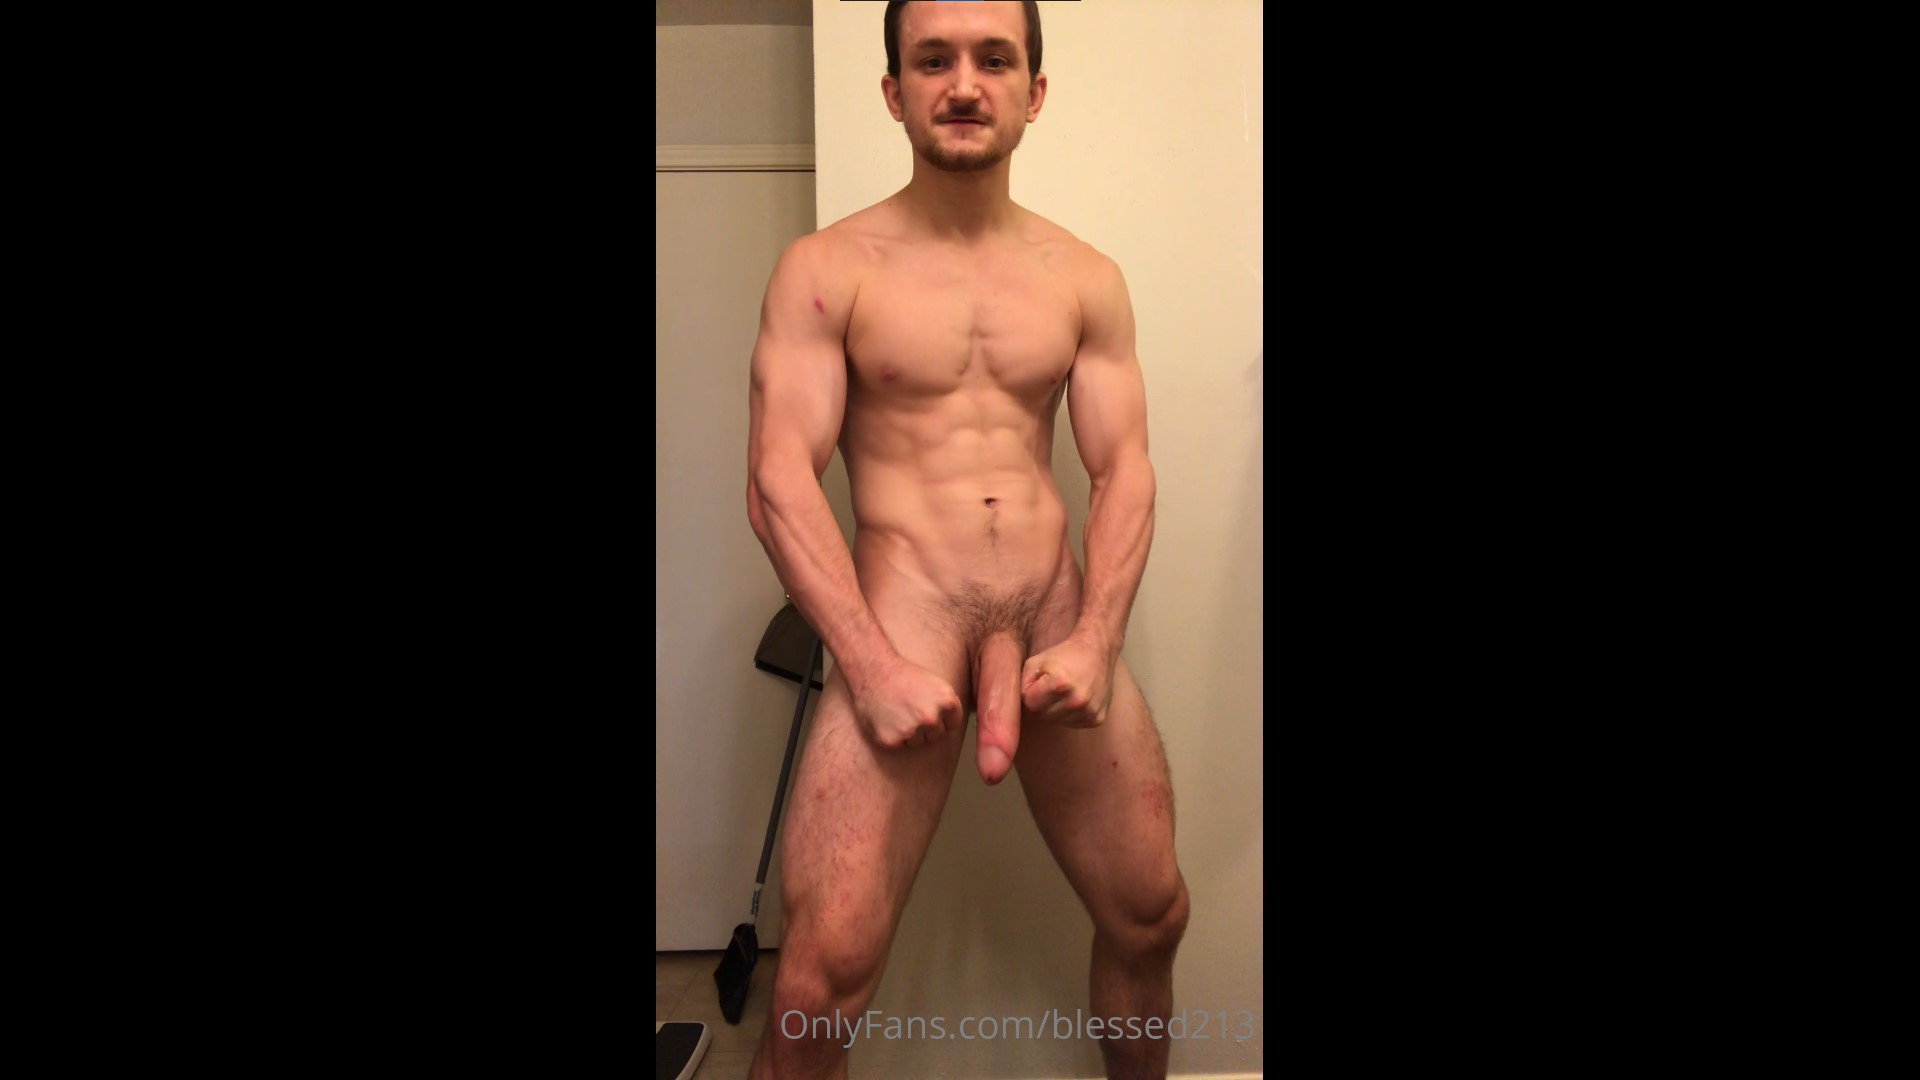 Jerking off hard while talking dirty - blessed213